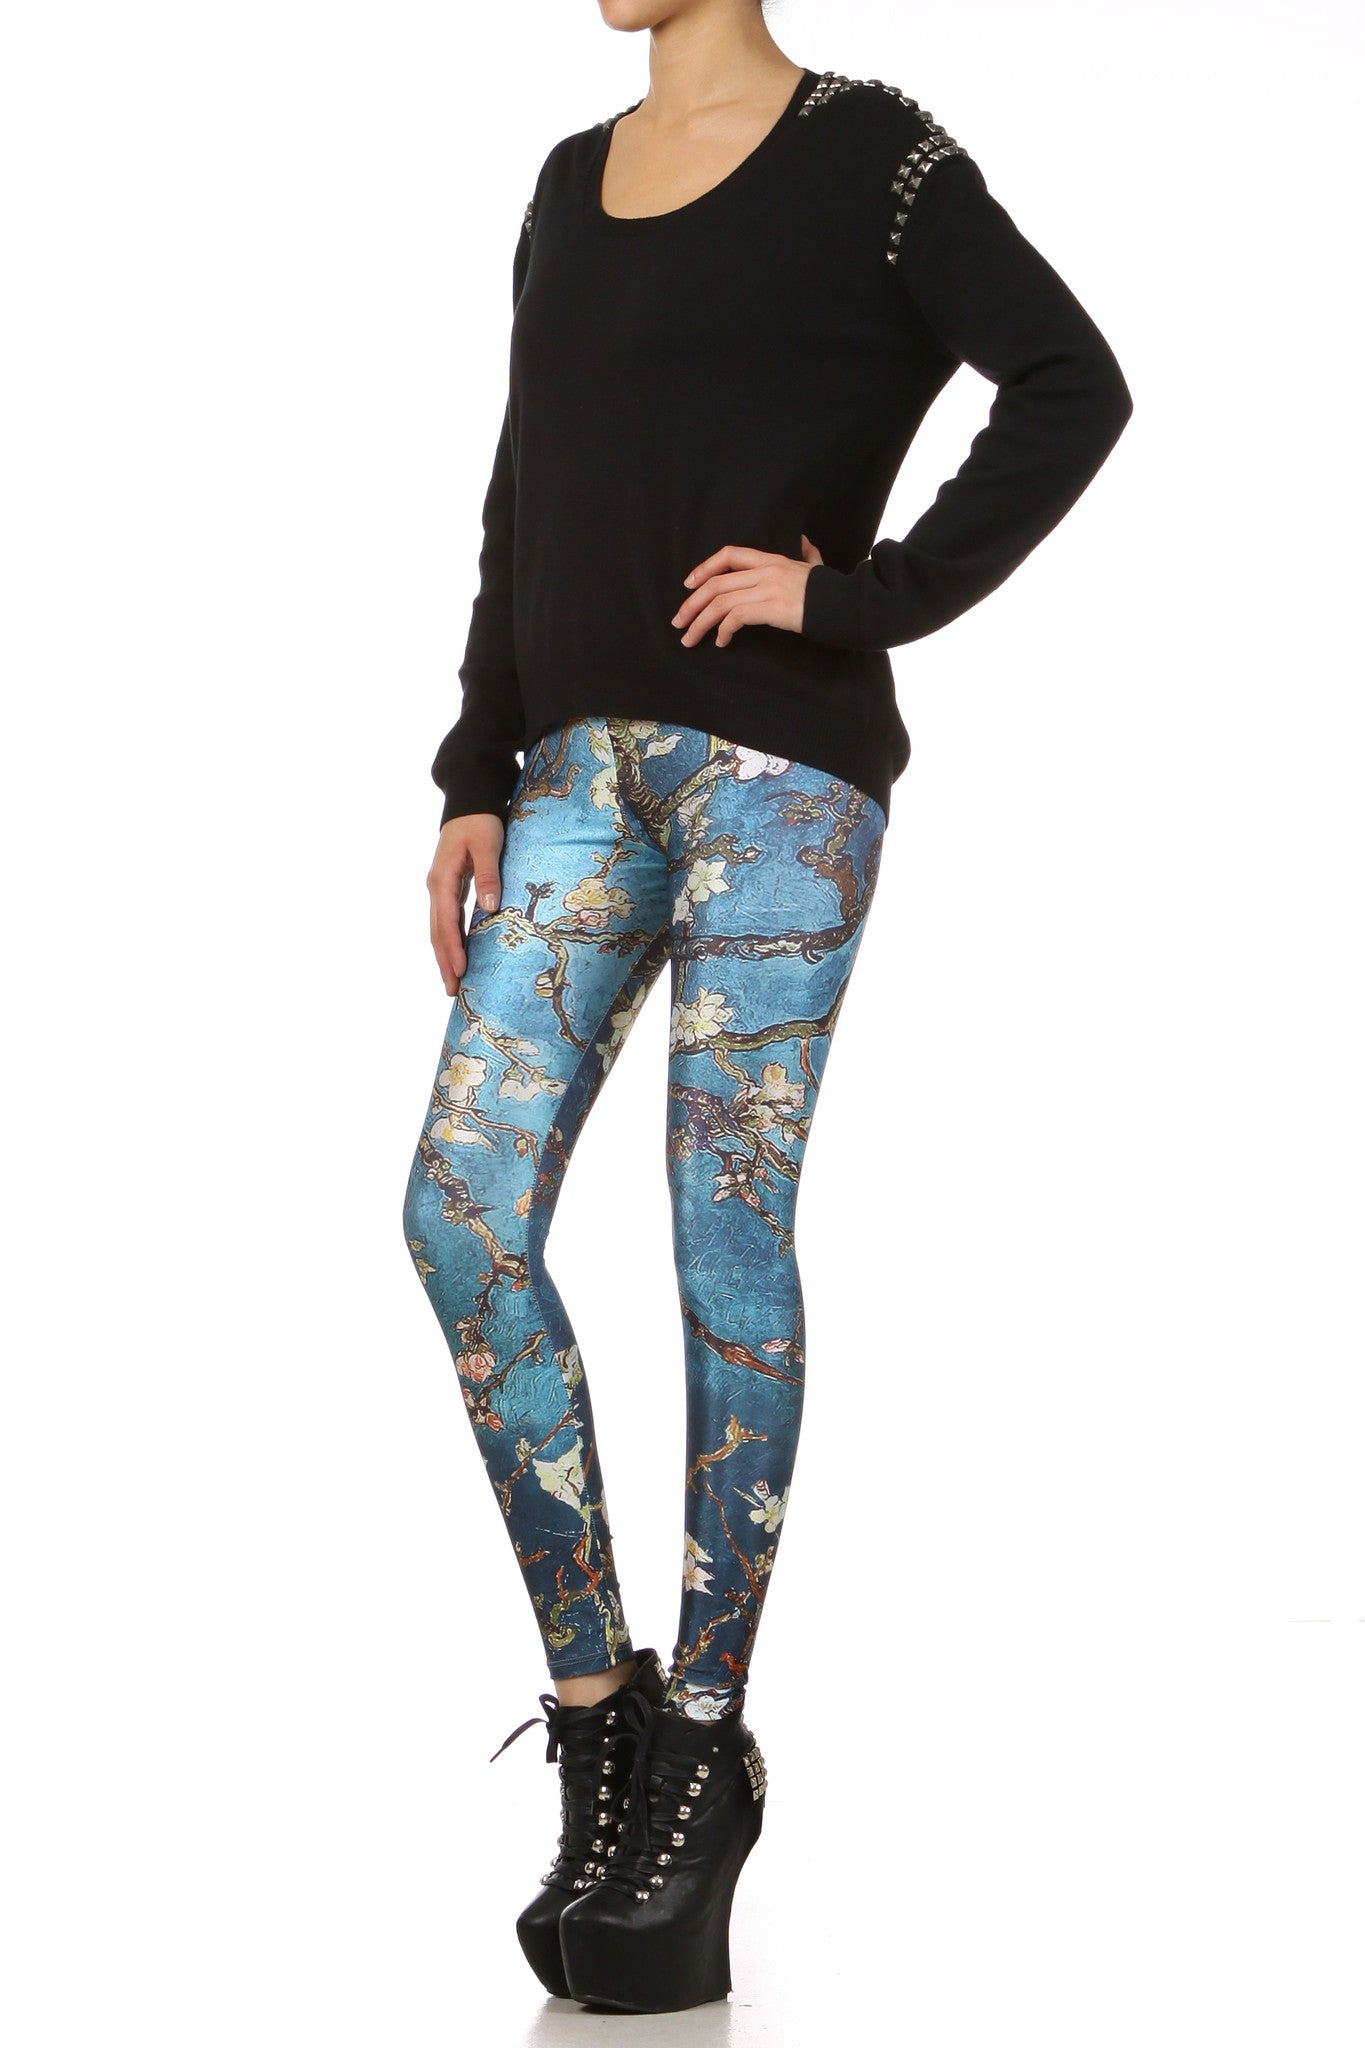 Almond Blossom Leggings - POPRAGEOUS  - 2